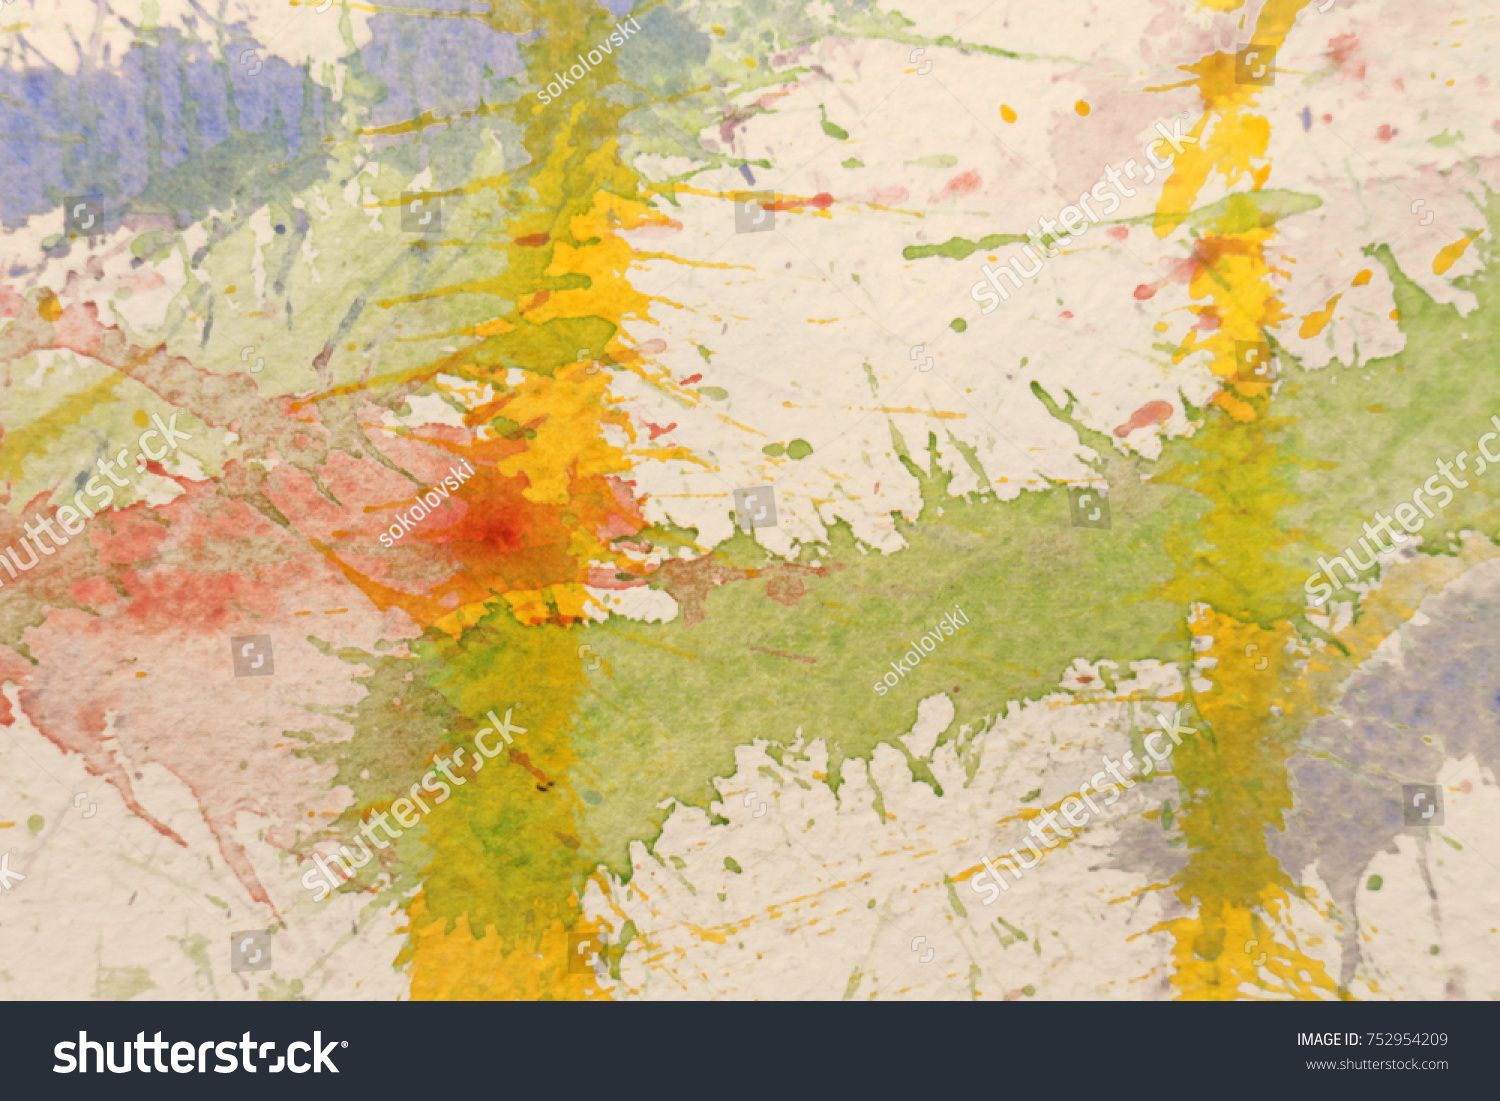 Watercolor splash with red, yellow and blue color | EZ Canvas